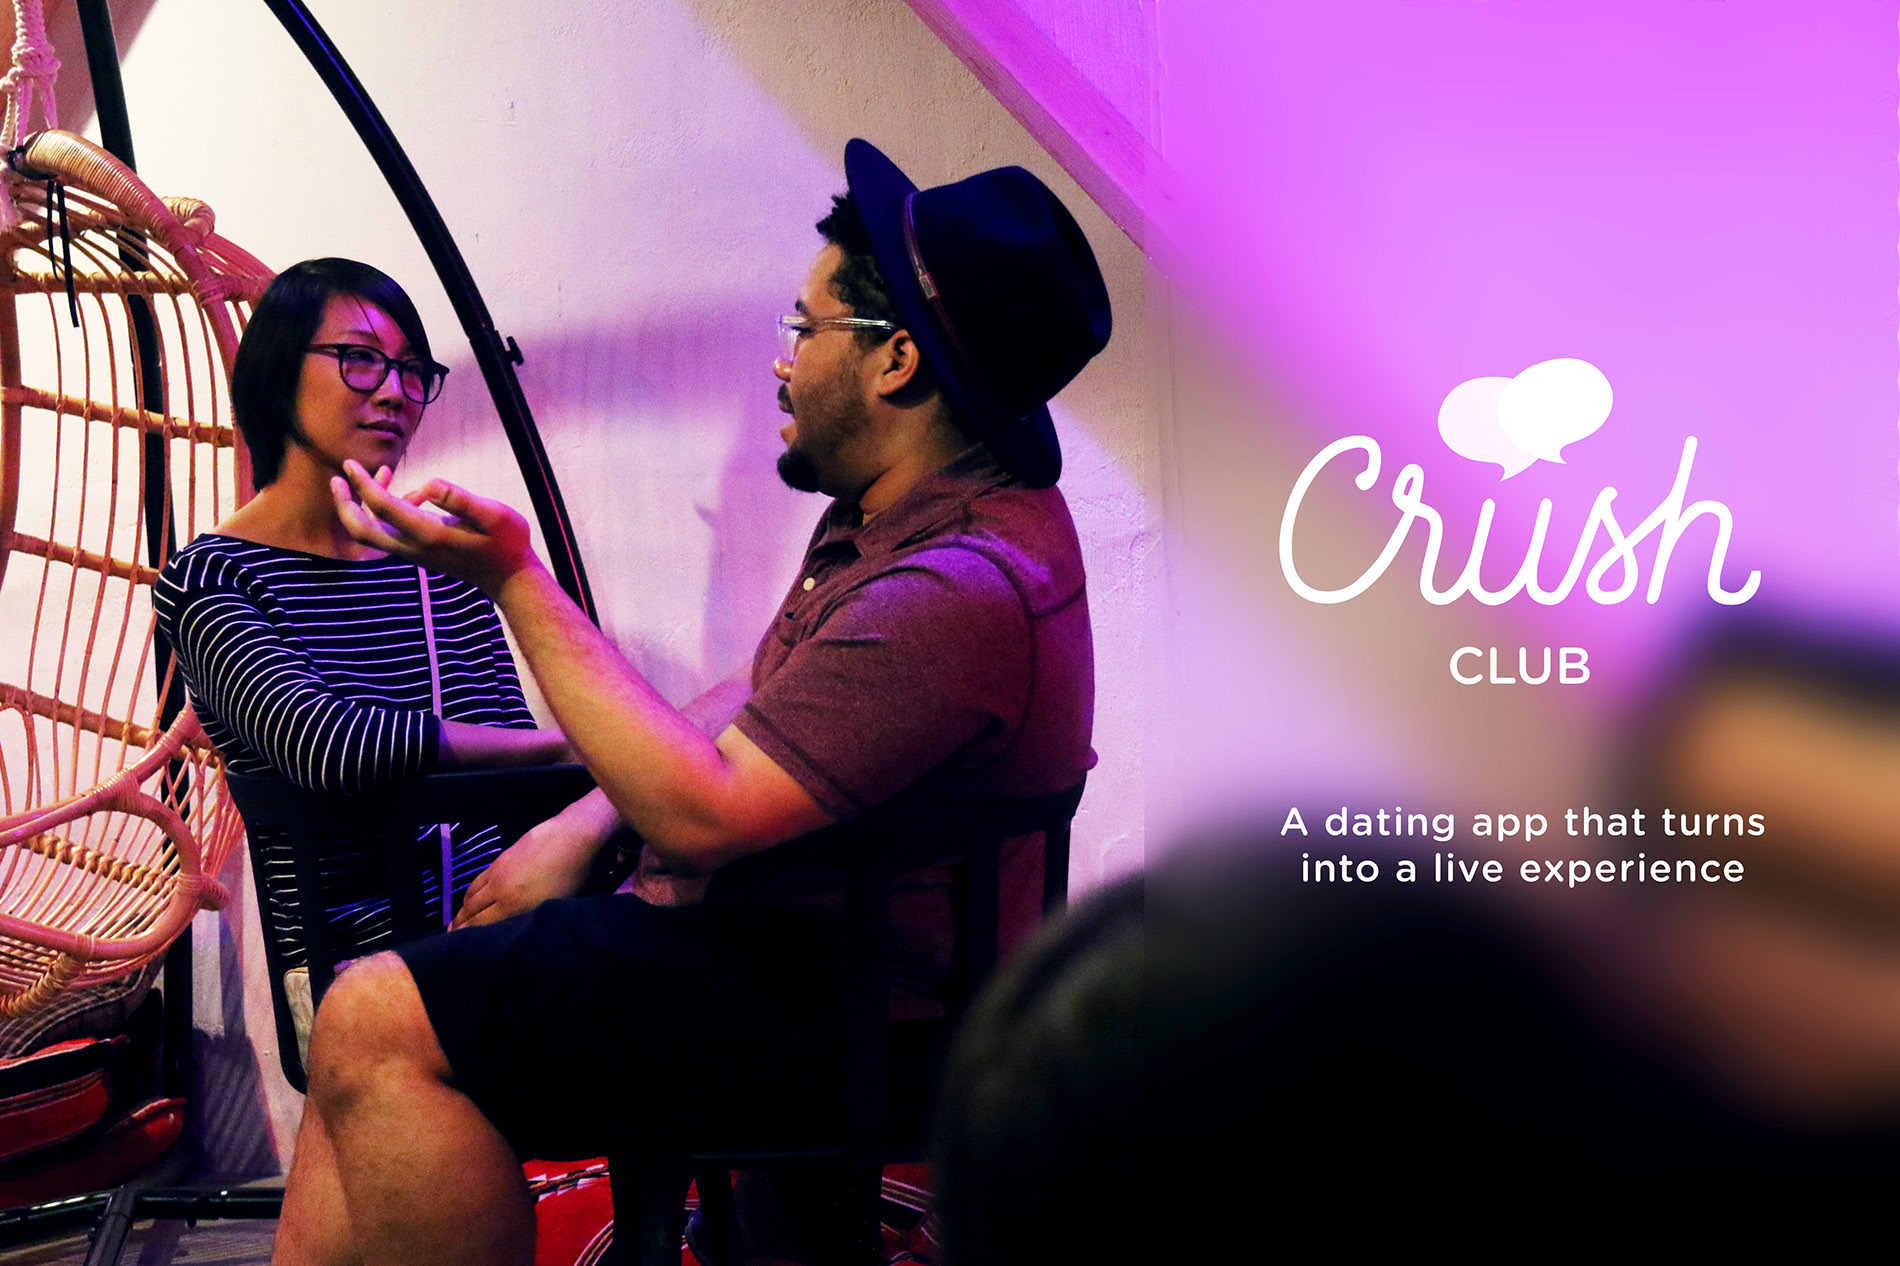 The Crush Club Cultivating authentic connections